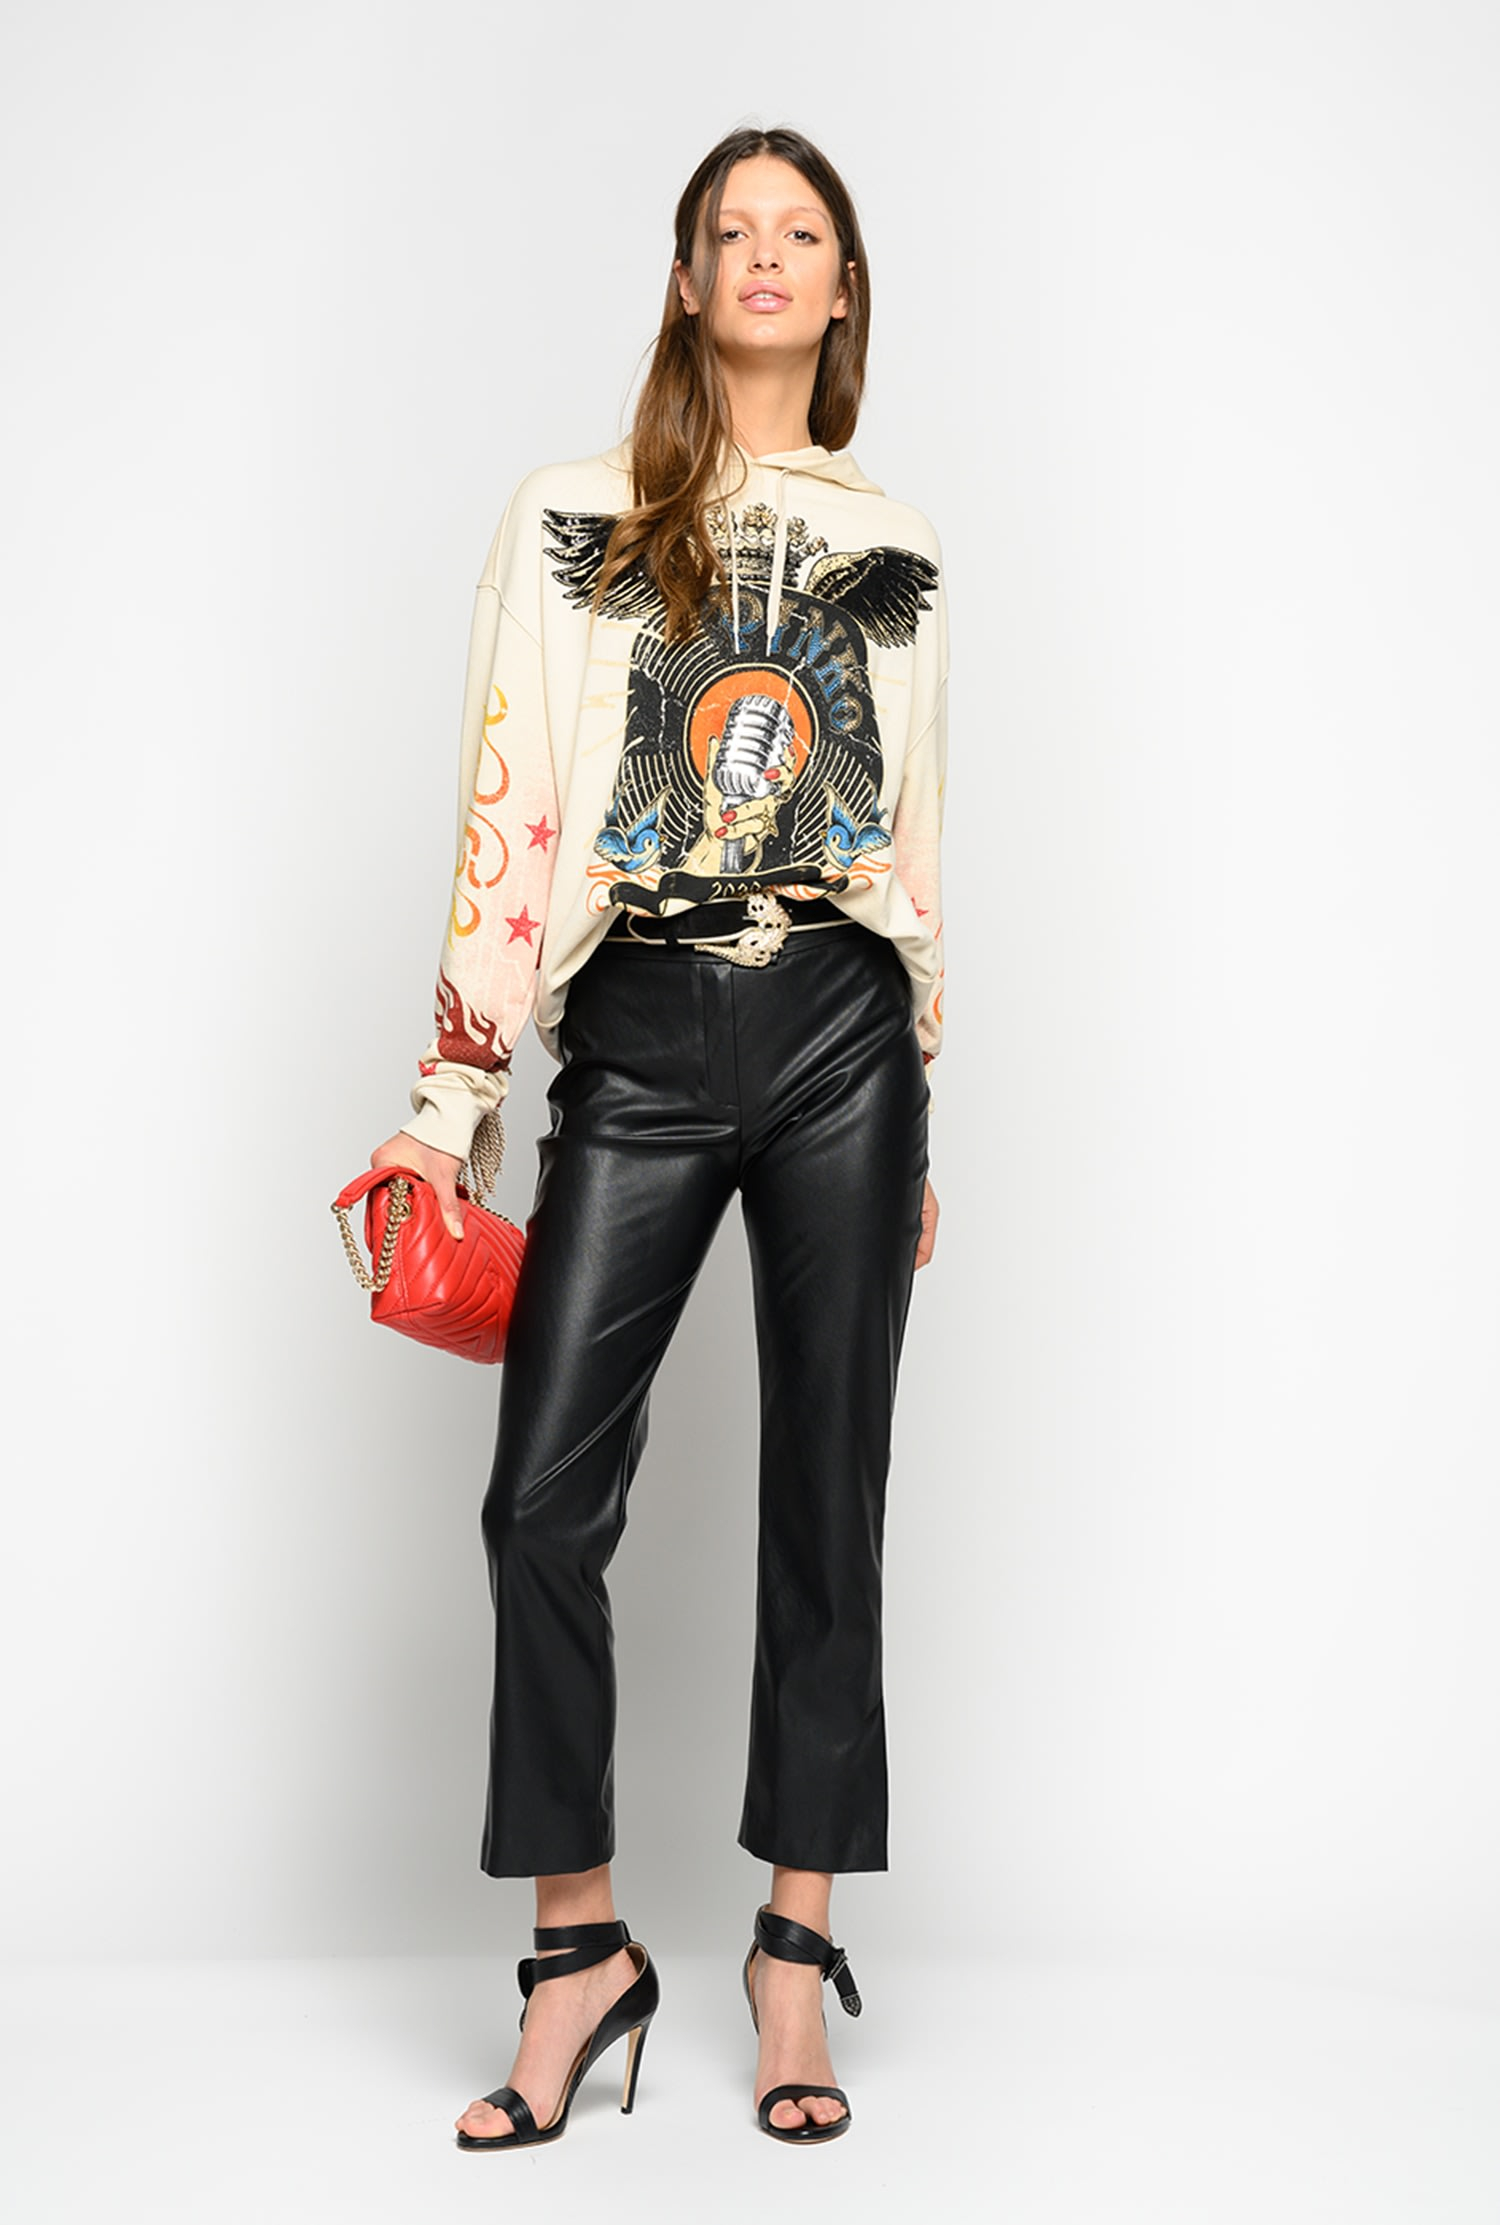 SHOPPING ON LINE PINKO FELPA OVERSIZE CON FRANGE TABASCO NEW COLLECTION WOMEN'S SPRING SUMMER 2020